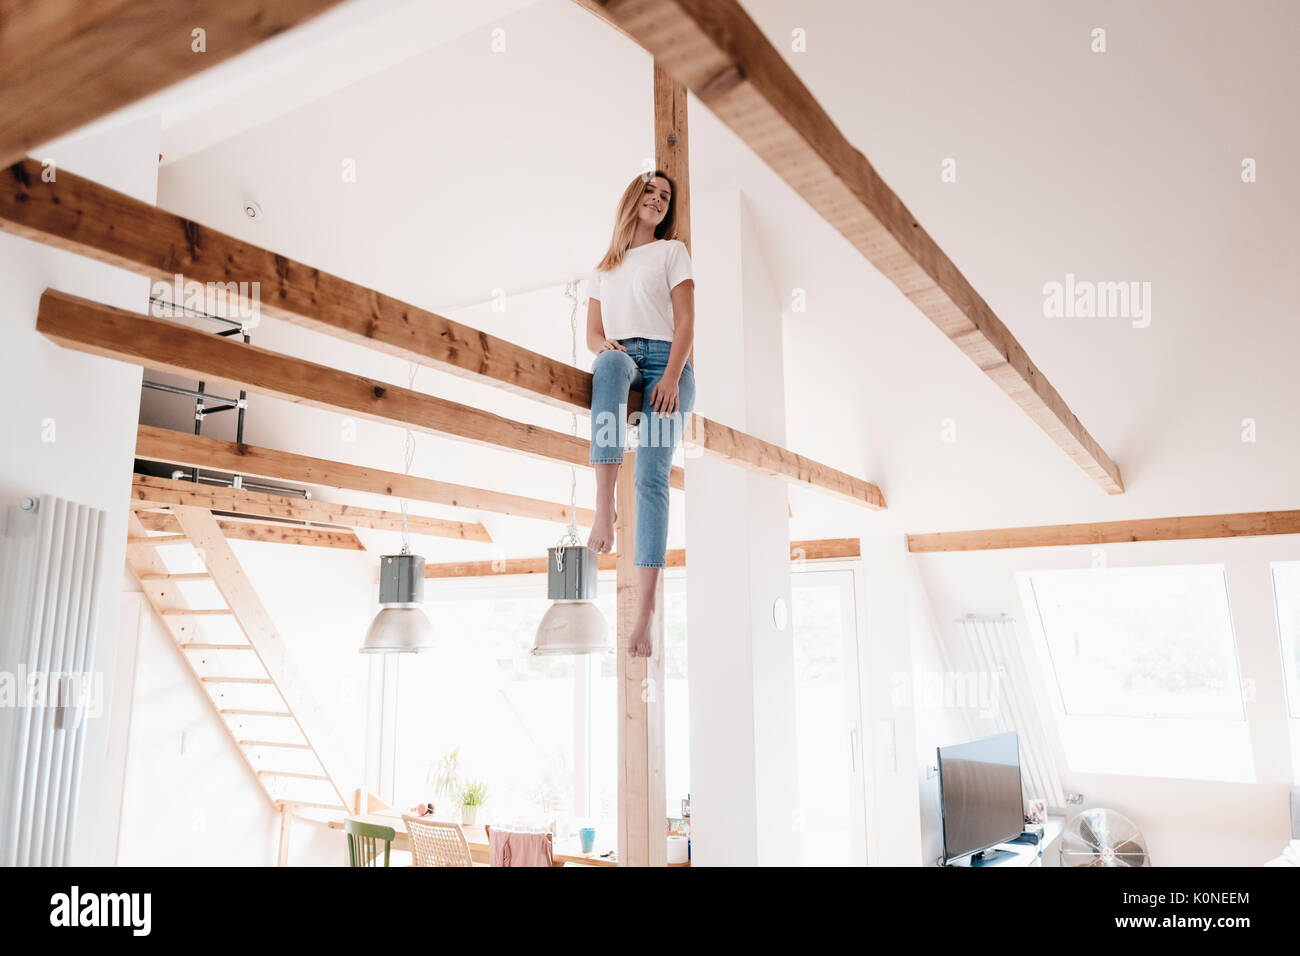 Joist Stock Photos Amp Joist Stock Images Alamy